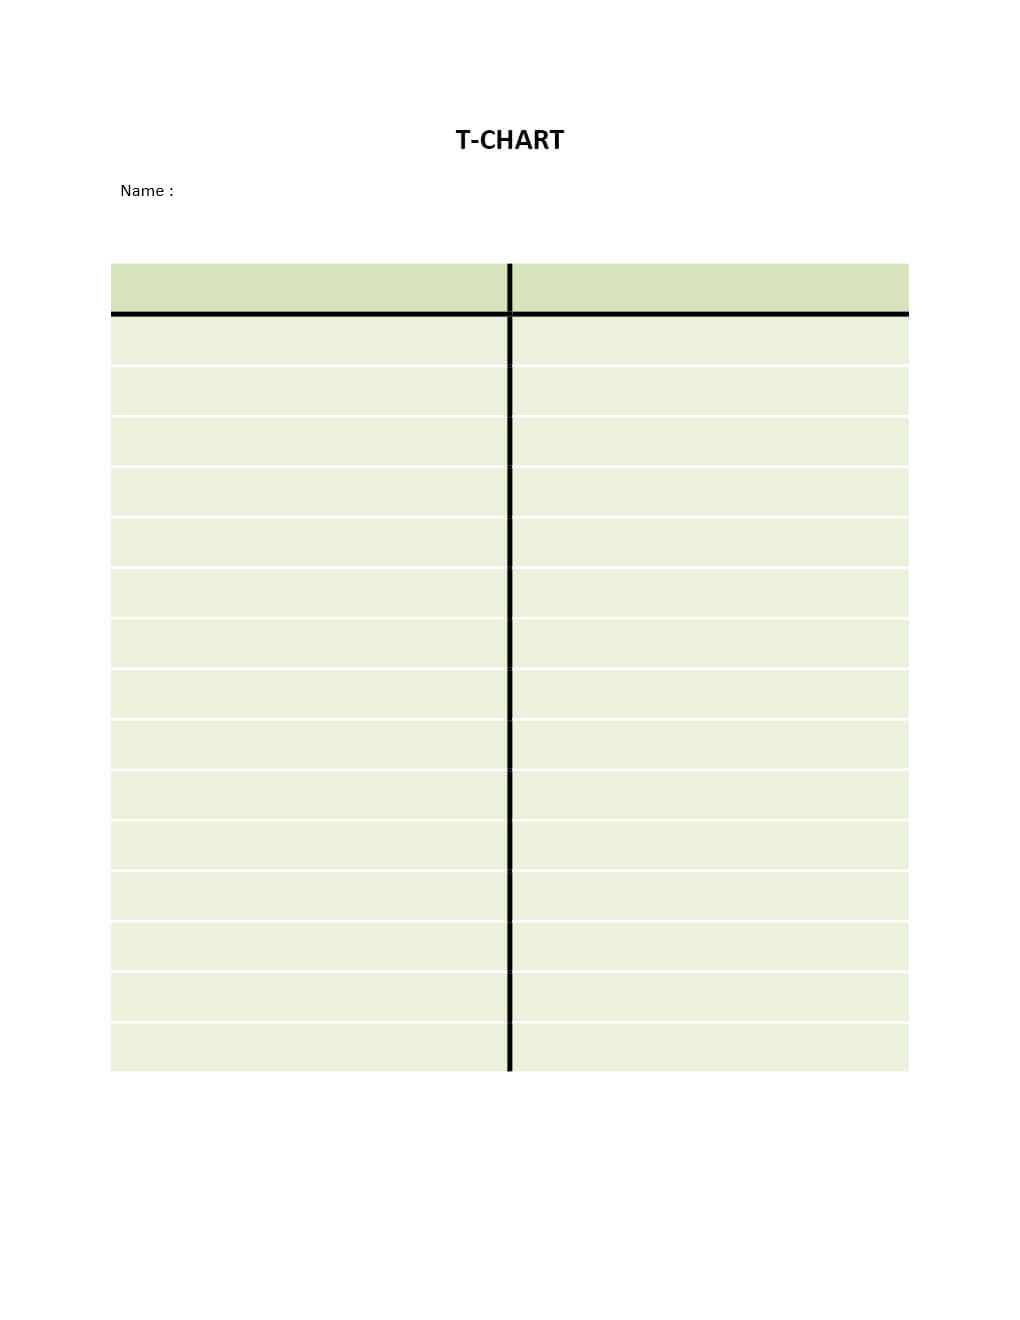 T Chart Throughout T Chart Template For Word